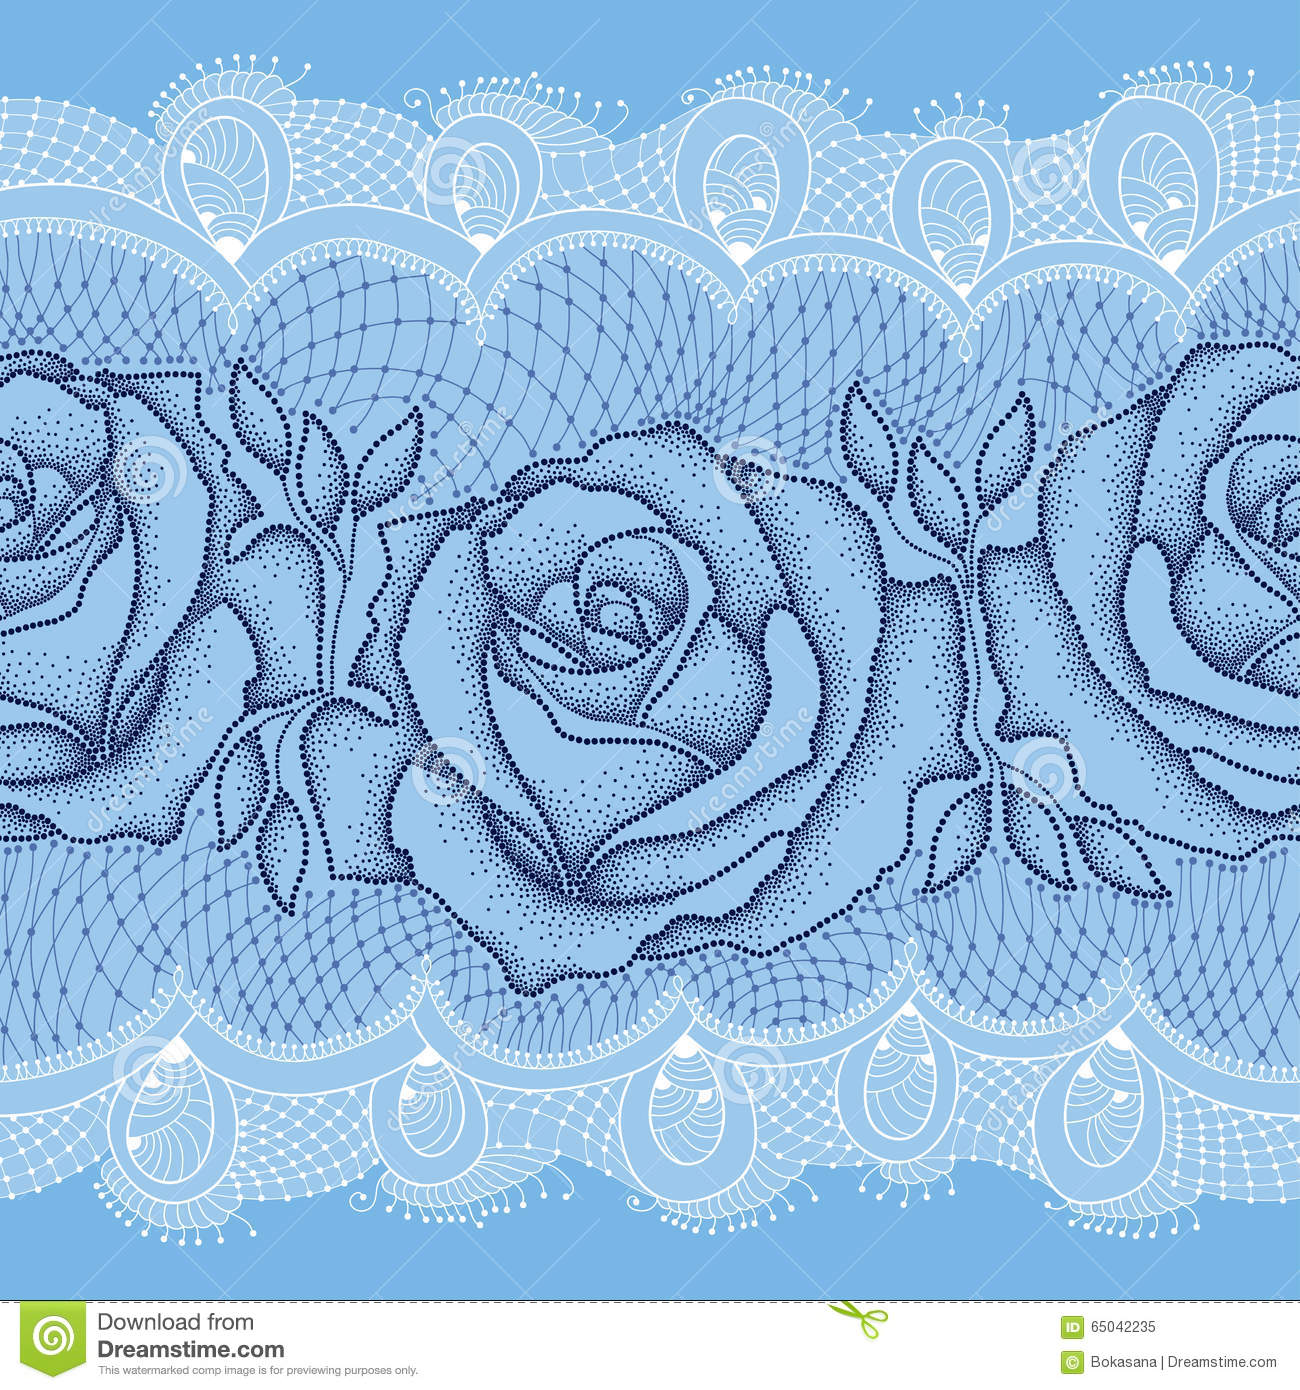 Black Flower Rose From Lace On White Background: Seamless Pattern With Dotted Rose In Black With Leaves On